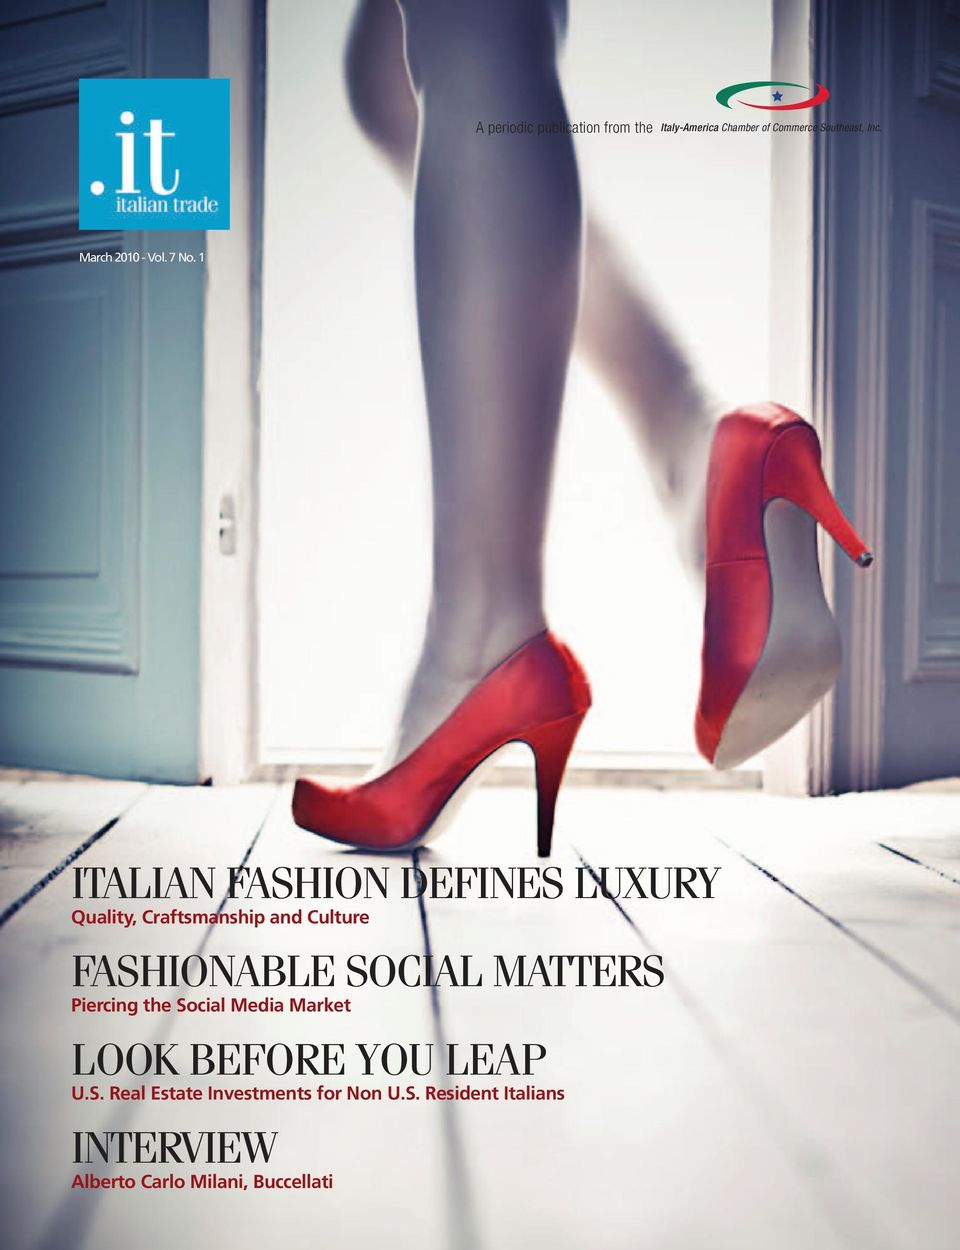 1 ITALIAN FASHION DEFINES LUXURY Quality, Craftsmanship and Culture FASHIONABLE SOCIAL